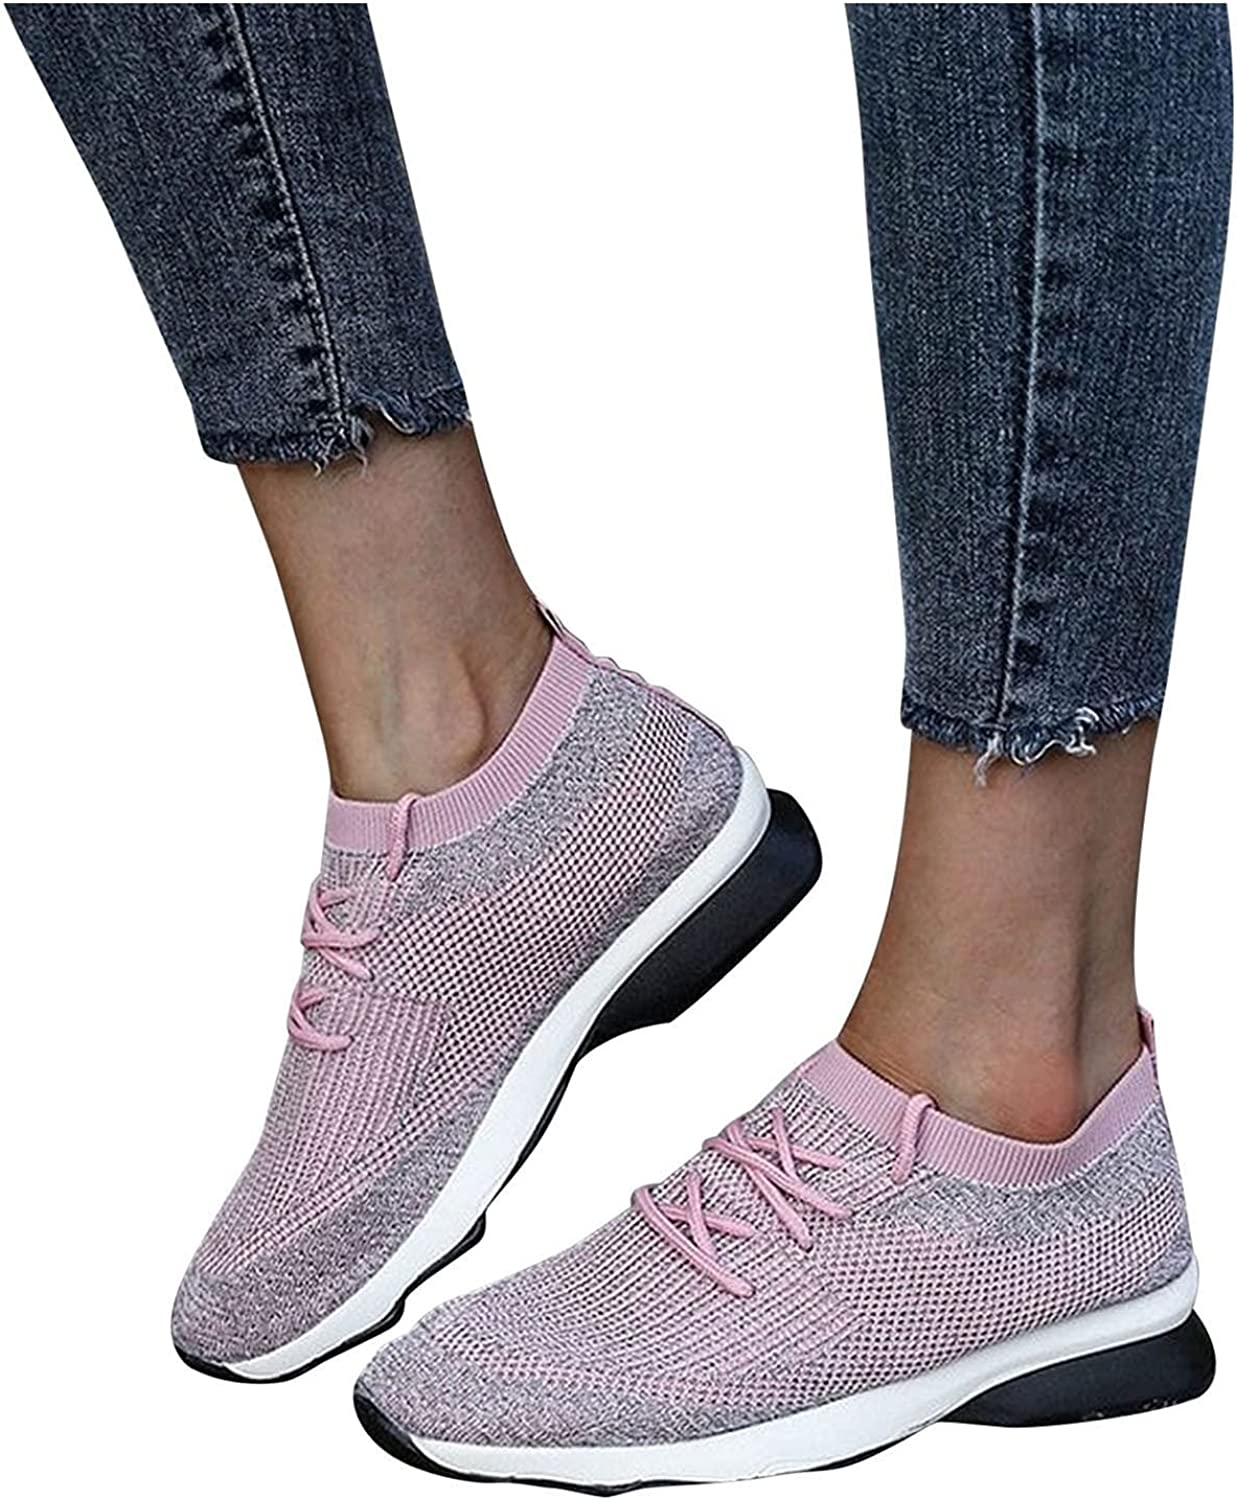 UOCUFY Sneakers for Women Slip On Sneakers Comfort Breathable Tennis Shoes Running Shoes Lightweight Casual Walking Shoes